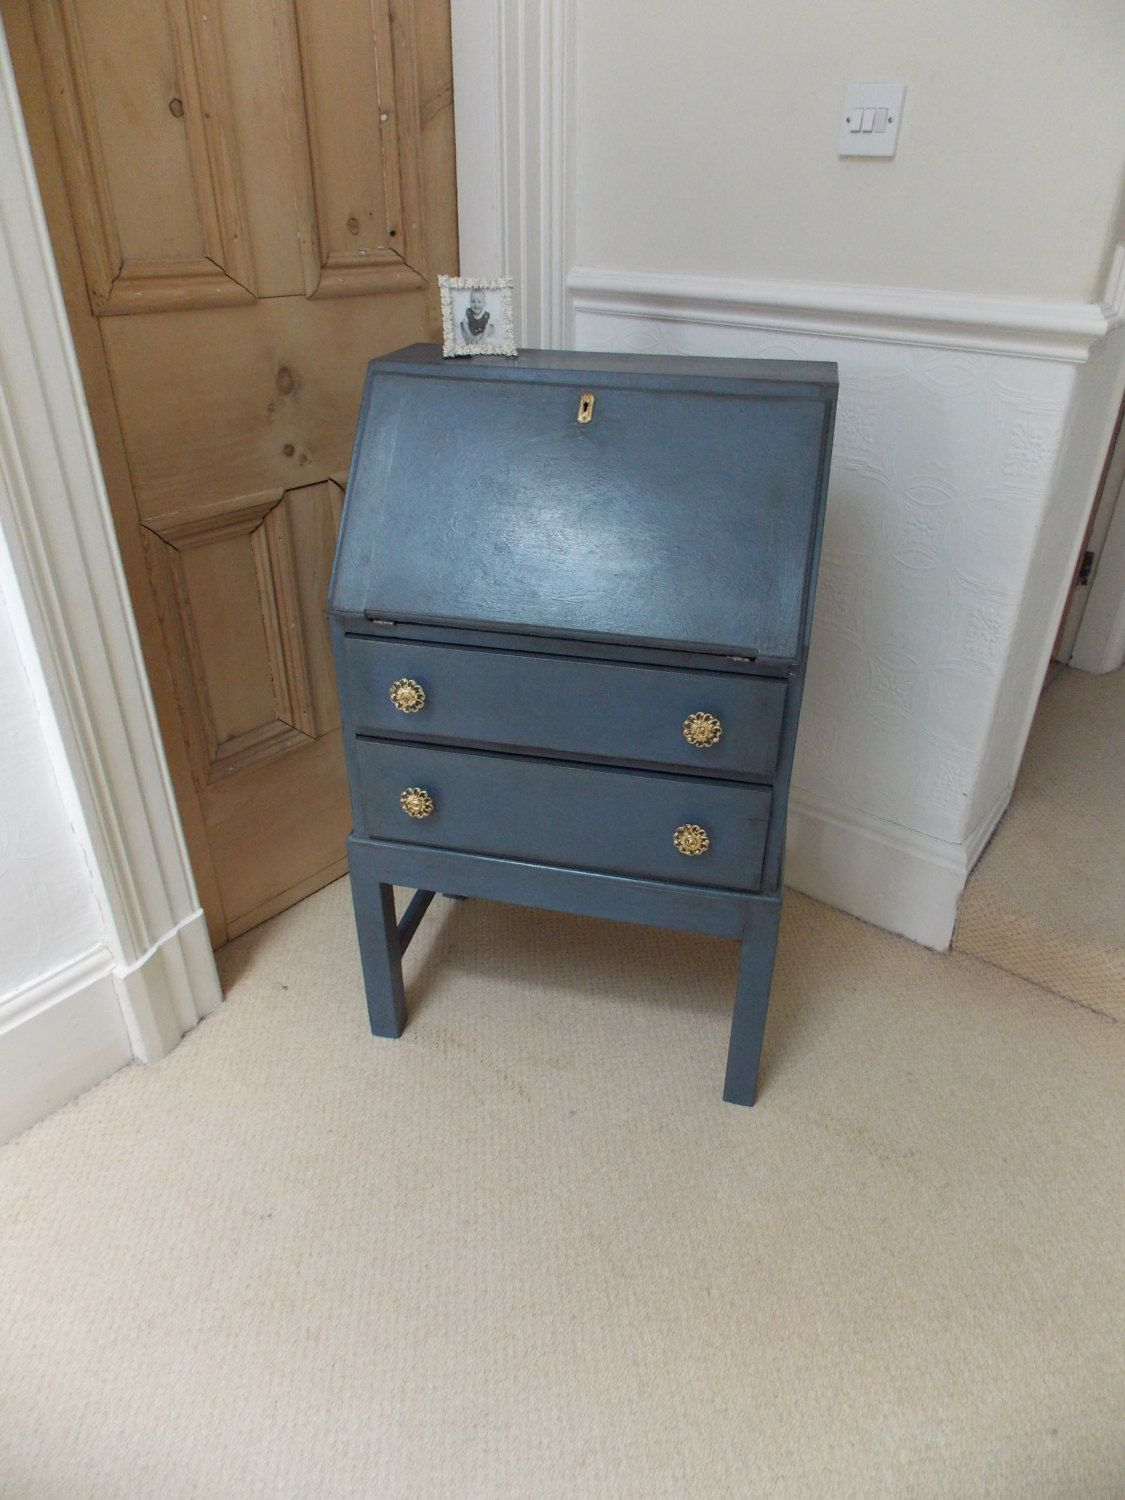 Small Vintage Bureau Writing Desk with Two Drawers.  Hand Painted Annie Sloan Old Violet with Blue Interior and Gold Leaf Detail by EmmettsChair on Etsy